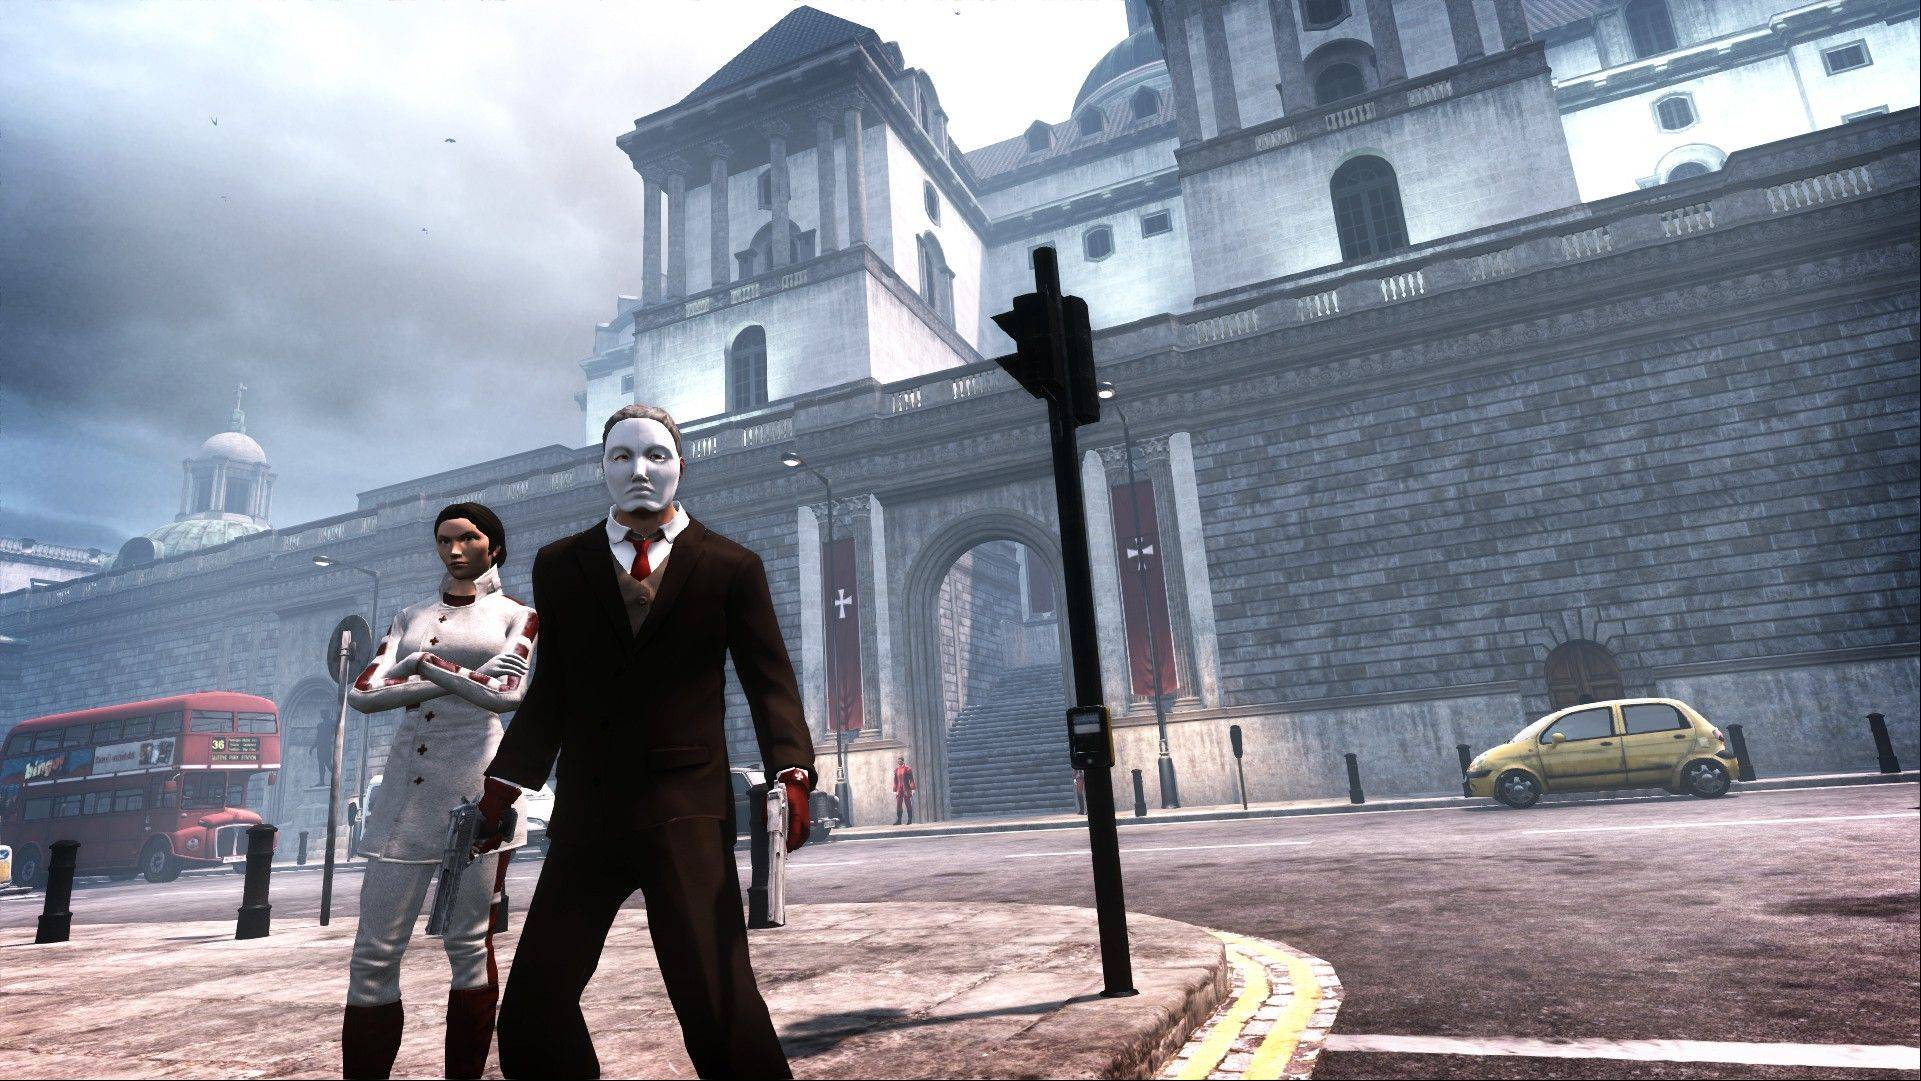 """The Secret World"" throws players into a mythical virtual earth populated with haunted houses, secret societies, vampire cults and zombie invasions."